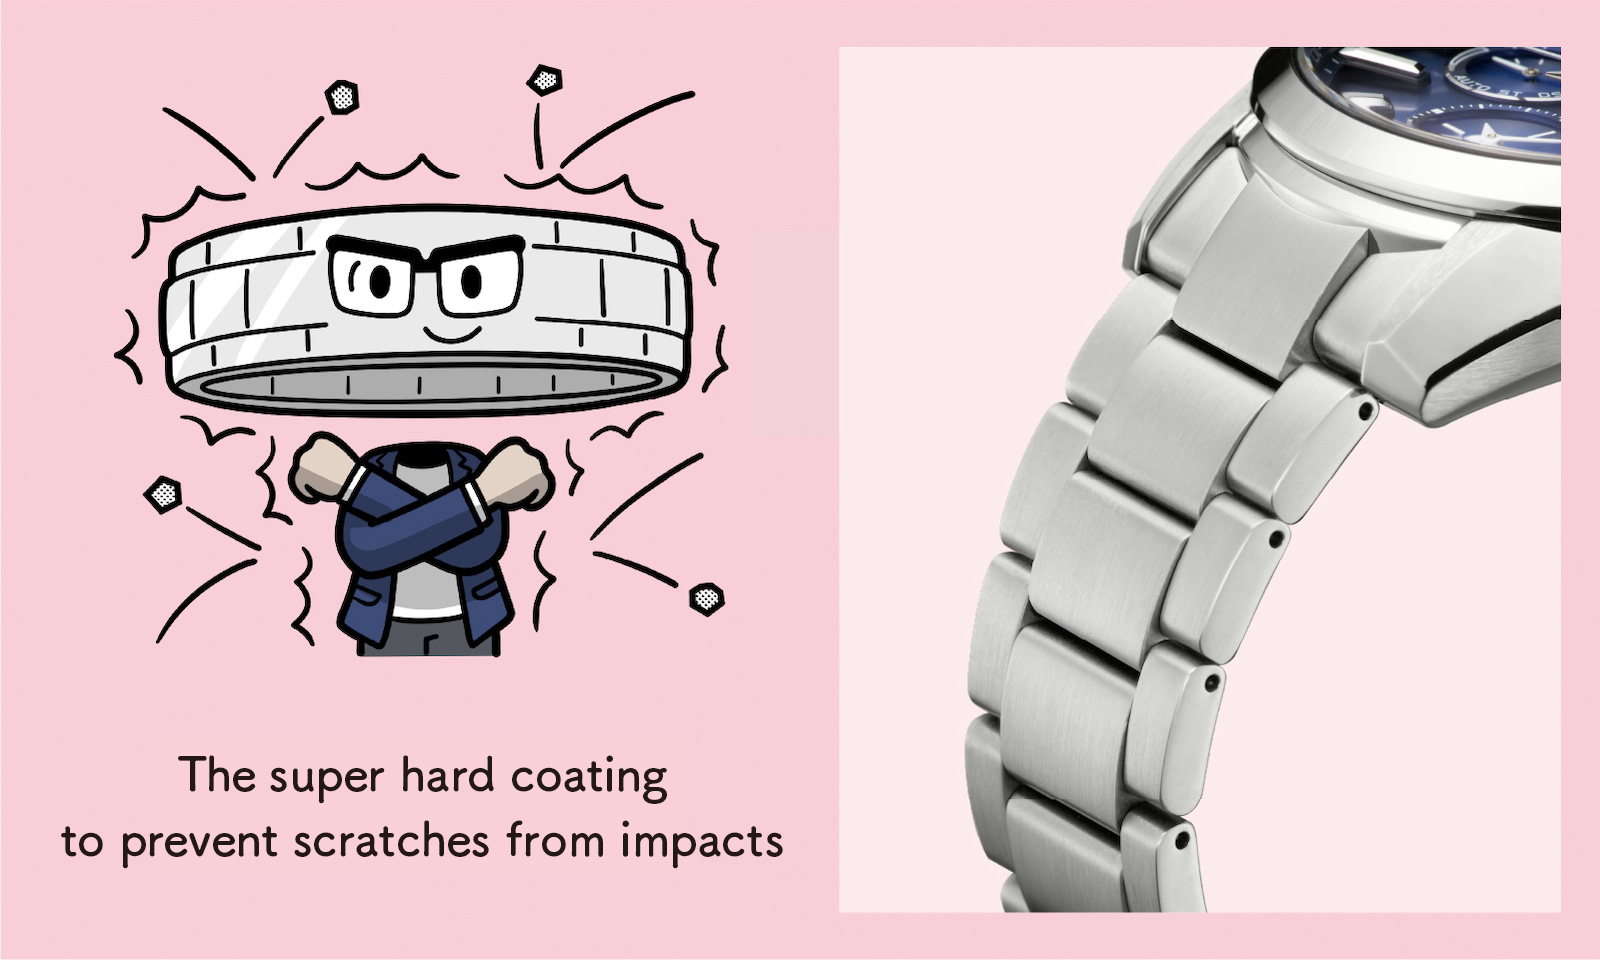 The super hard coating to prevent scratches from impacts (Enlarged photo of the bracelet)